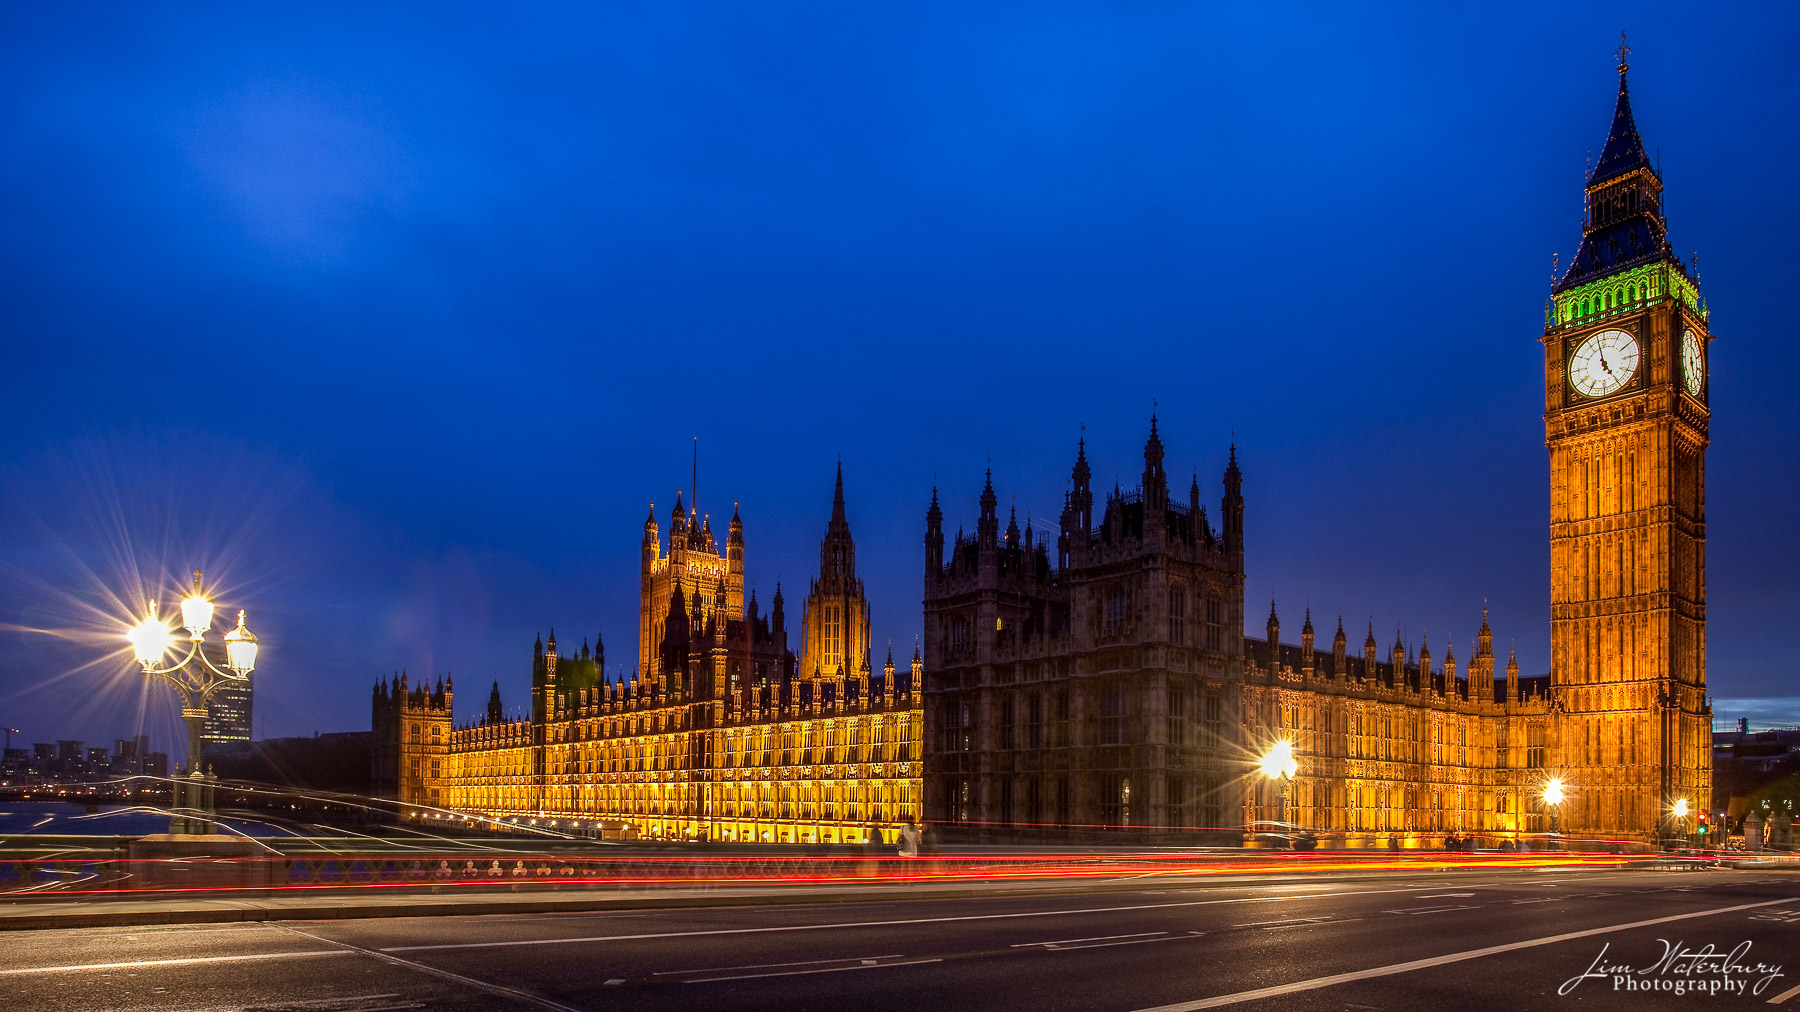 Big Ben, the Clock Tower (now the Elizabeth Tower) and the Palace of Westminster in London, at night.